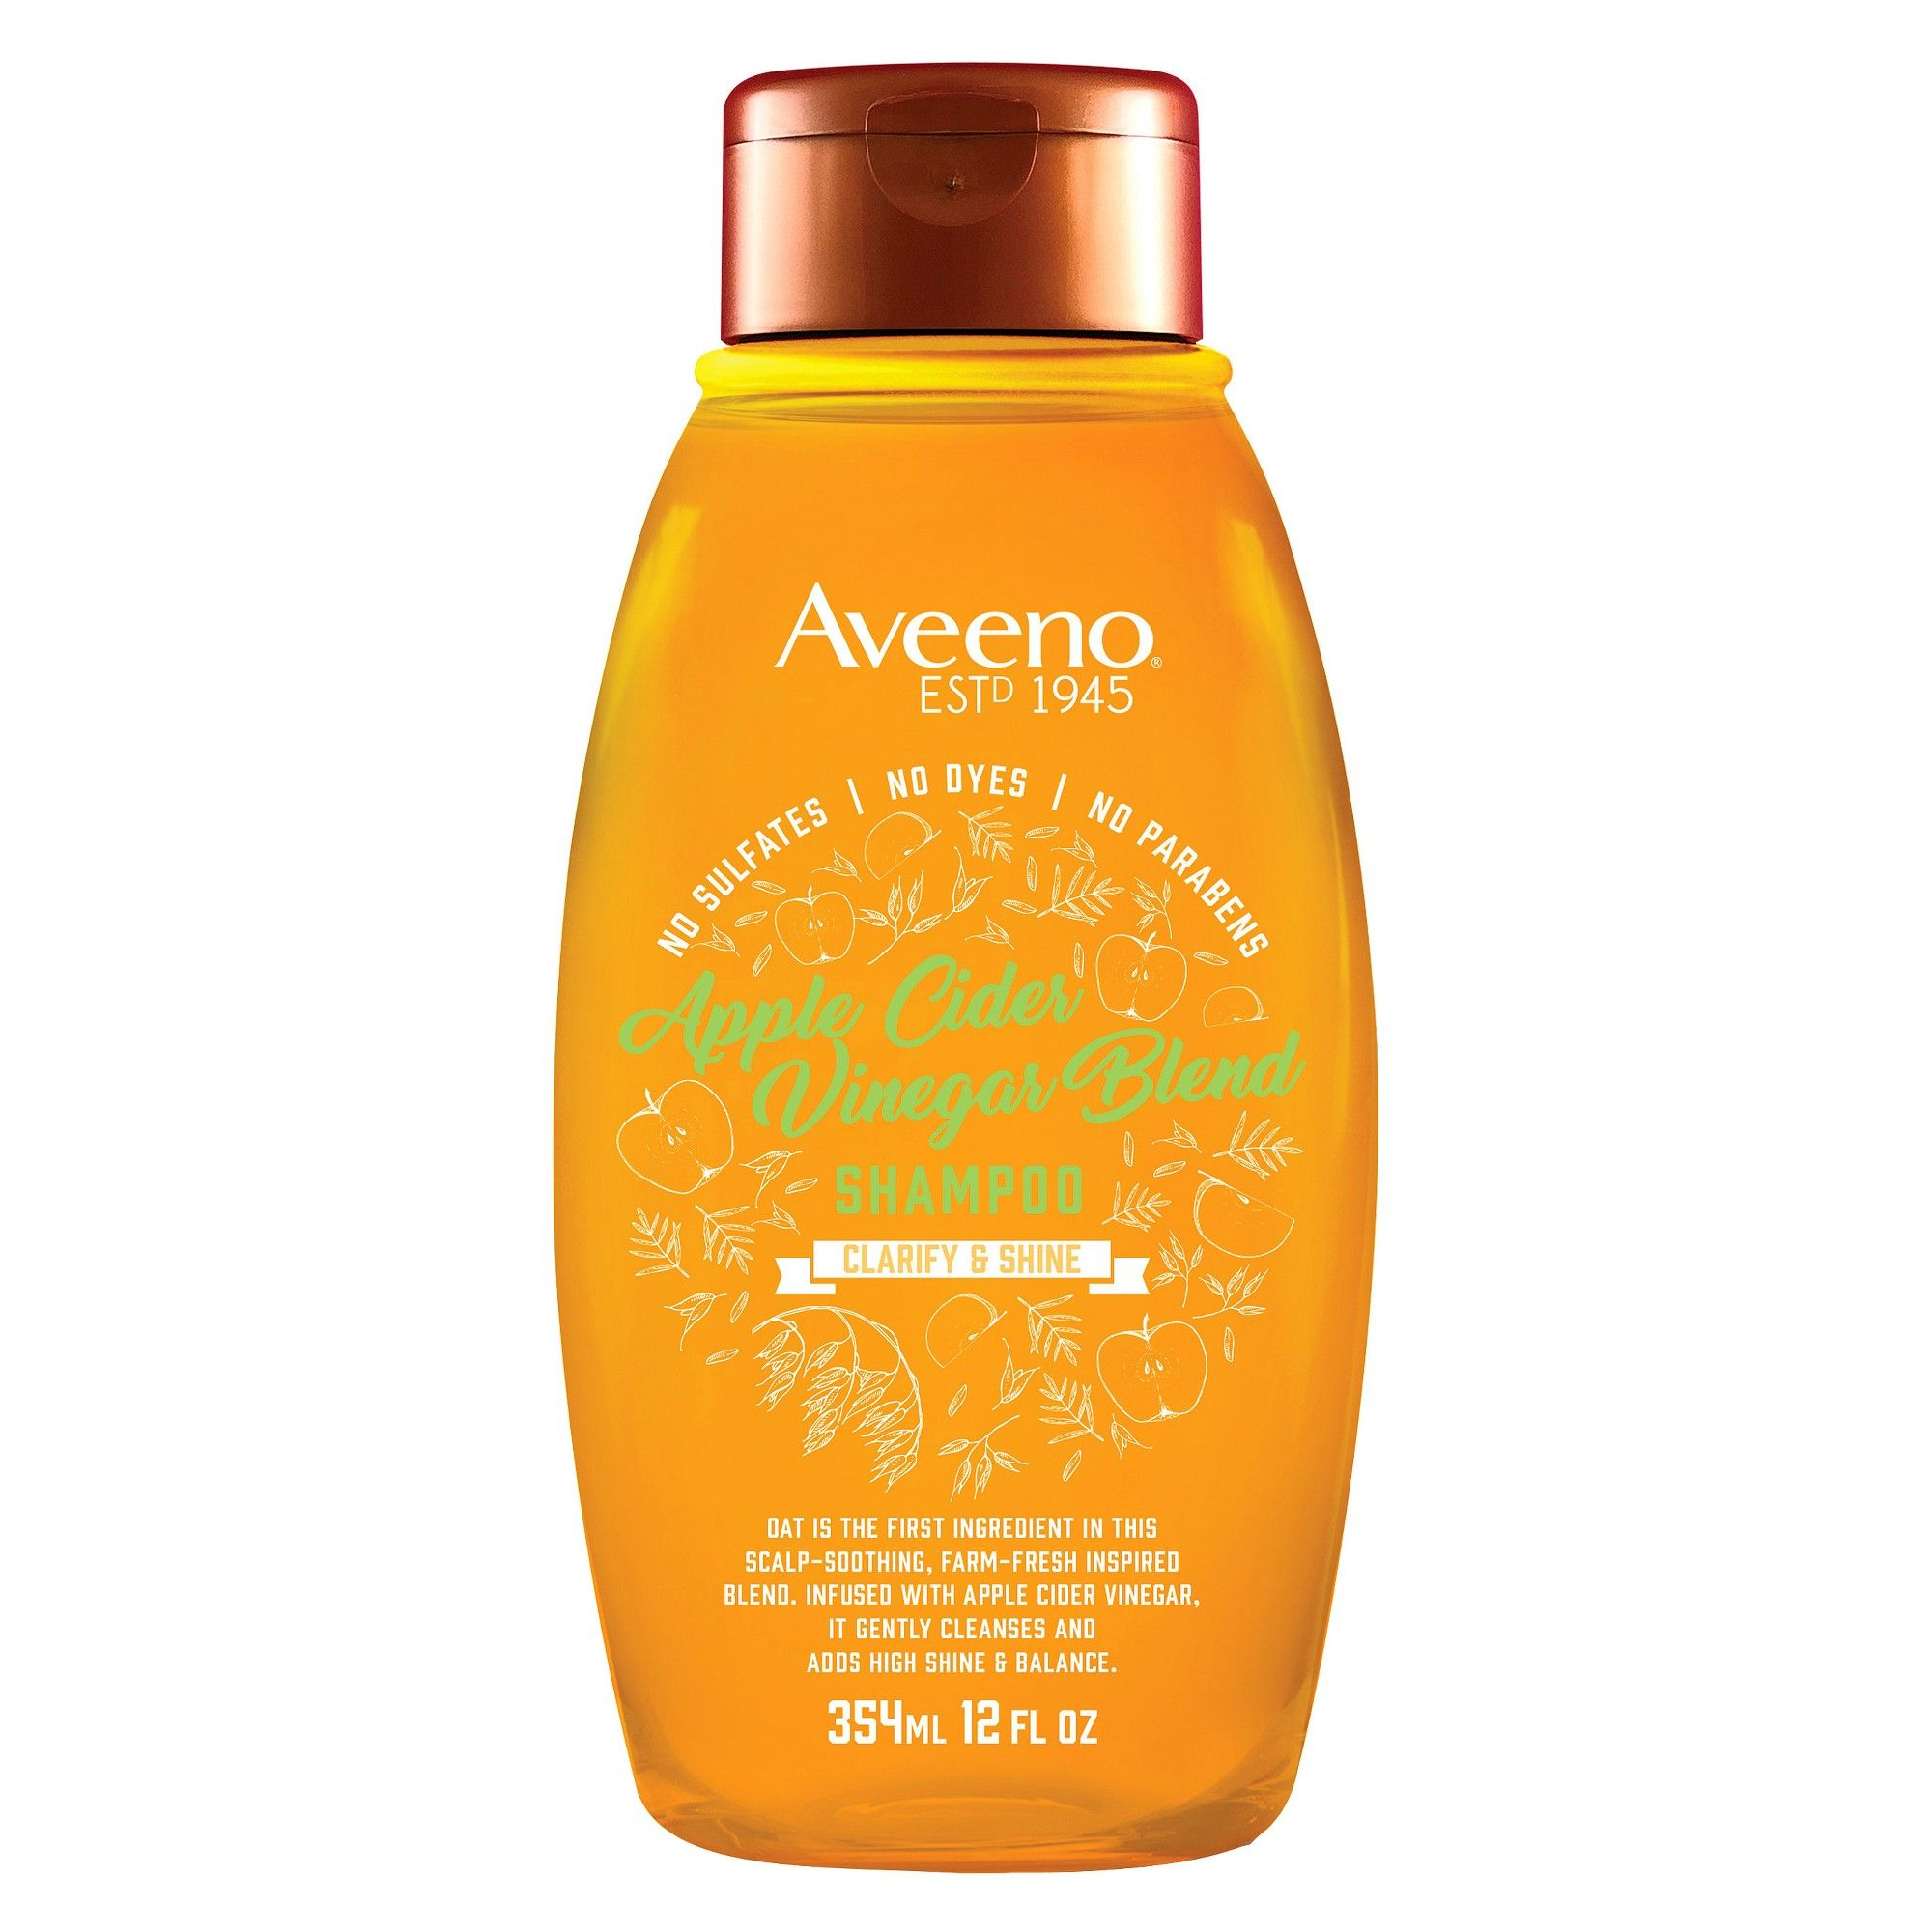 Aveeno Apple Cider Vinegar Blend Shampoo - 12 fl oz in